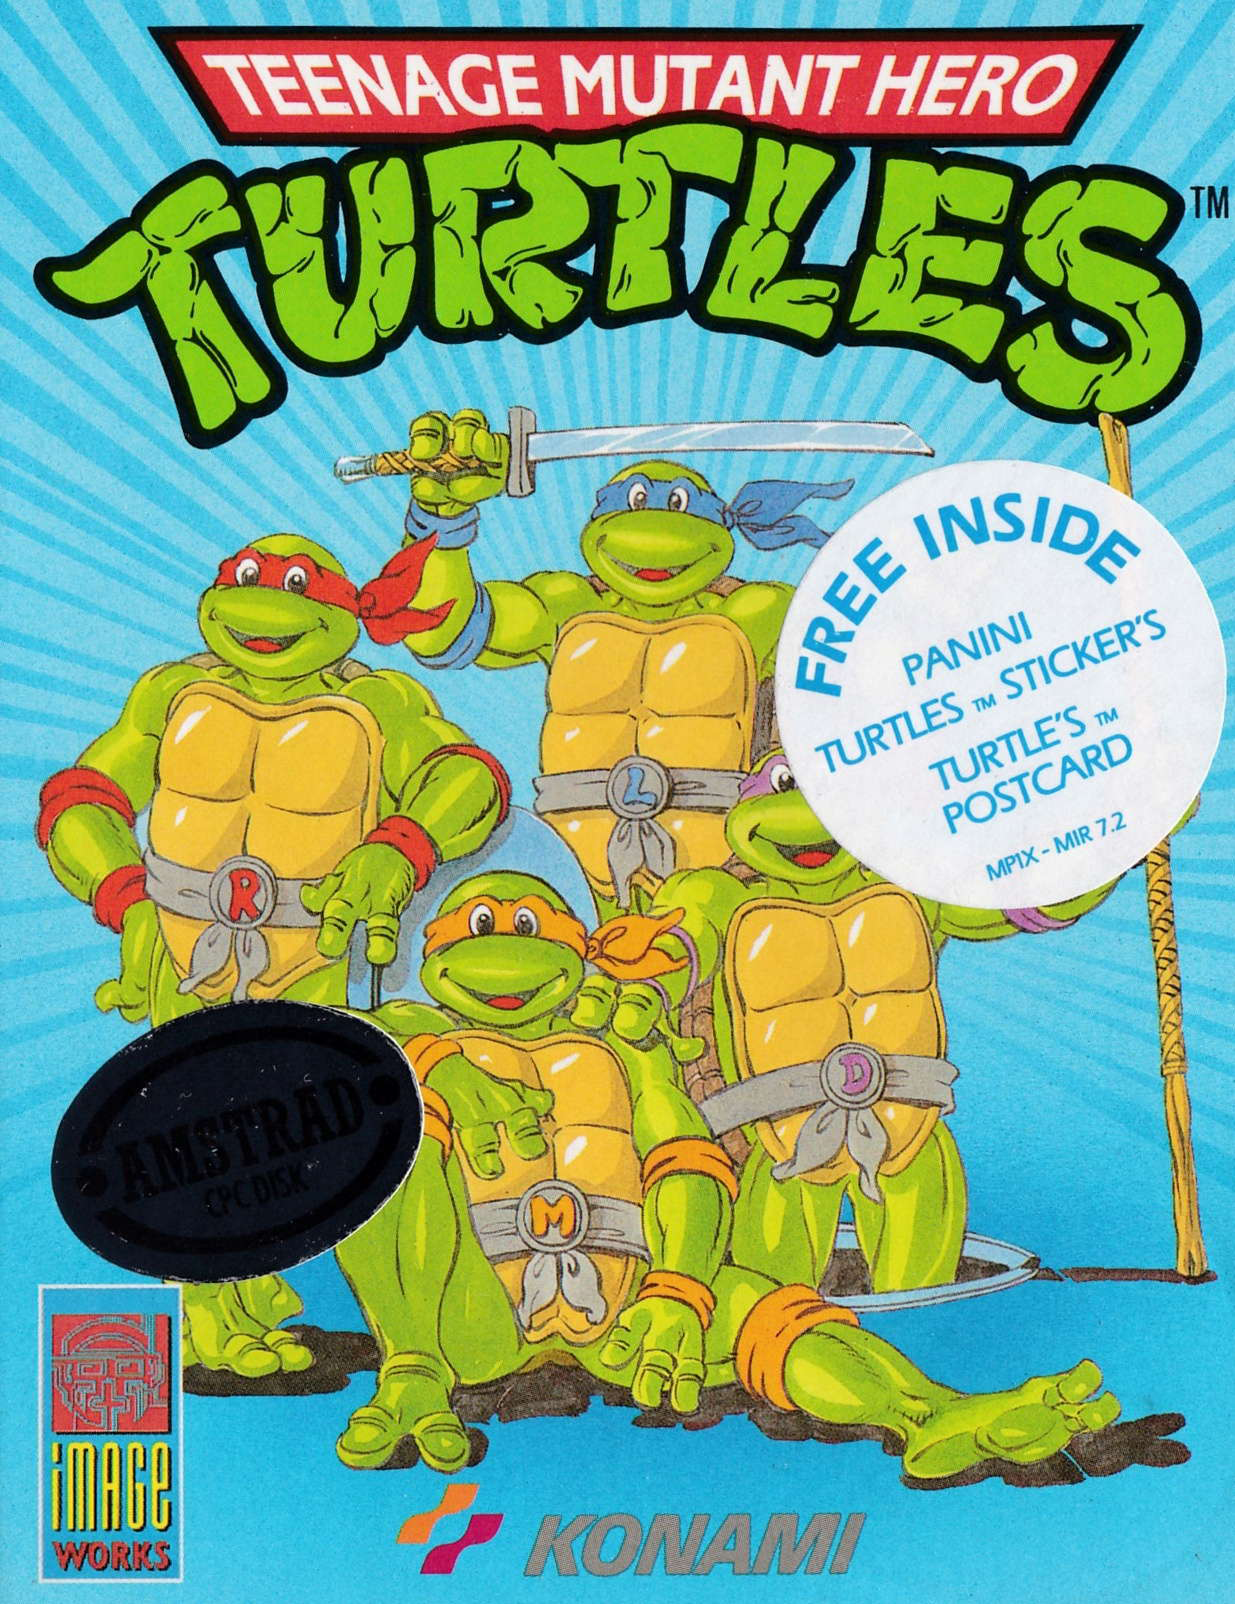 cover of the Amstrad CPC game Teenage Mutant Hero Turtles  by GameBase CPC